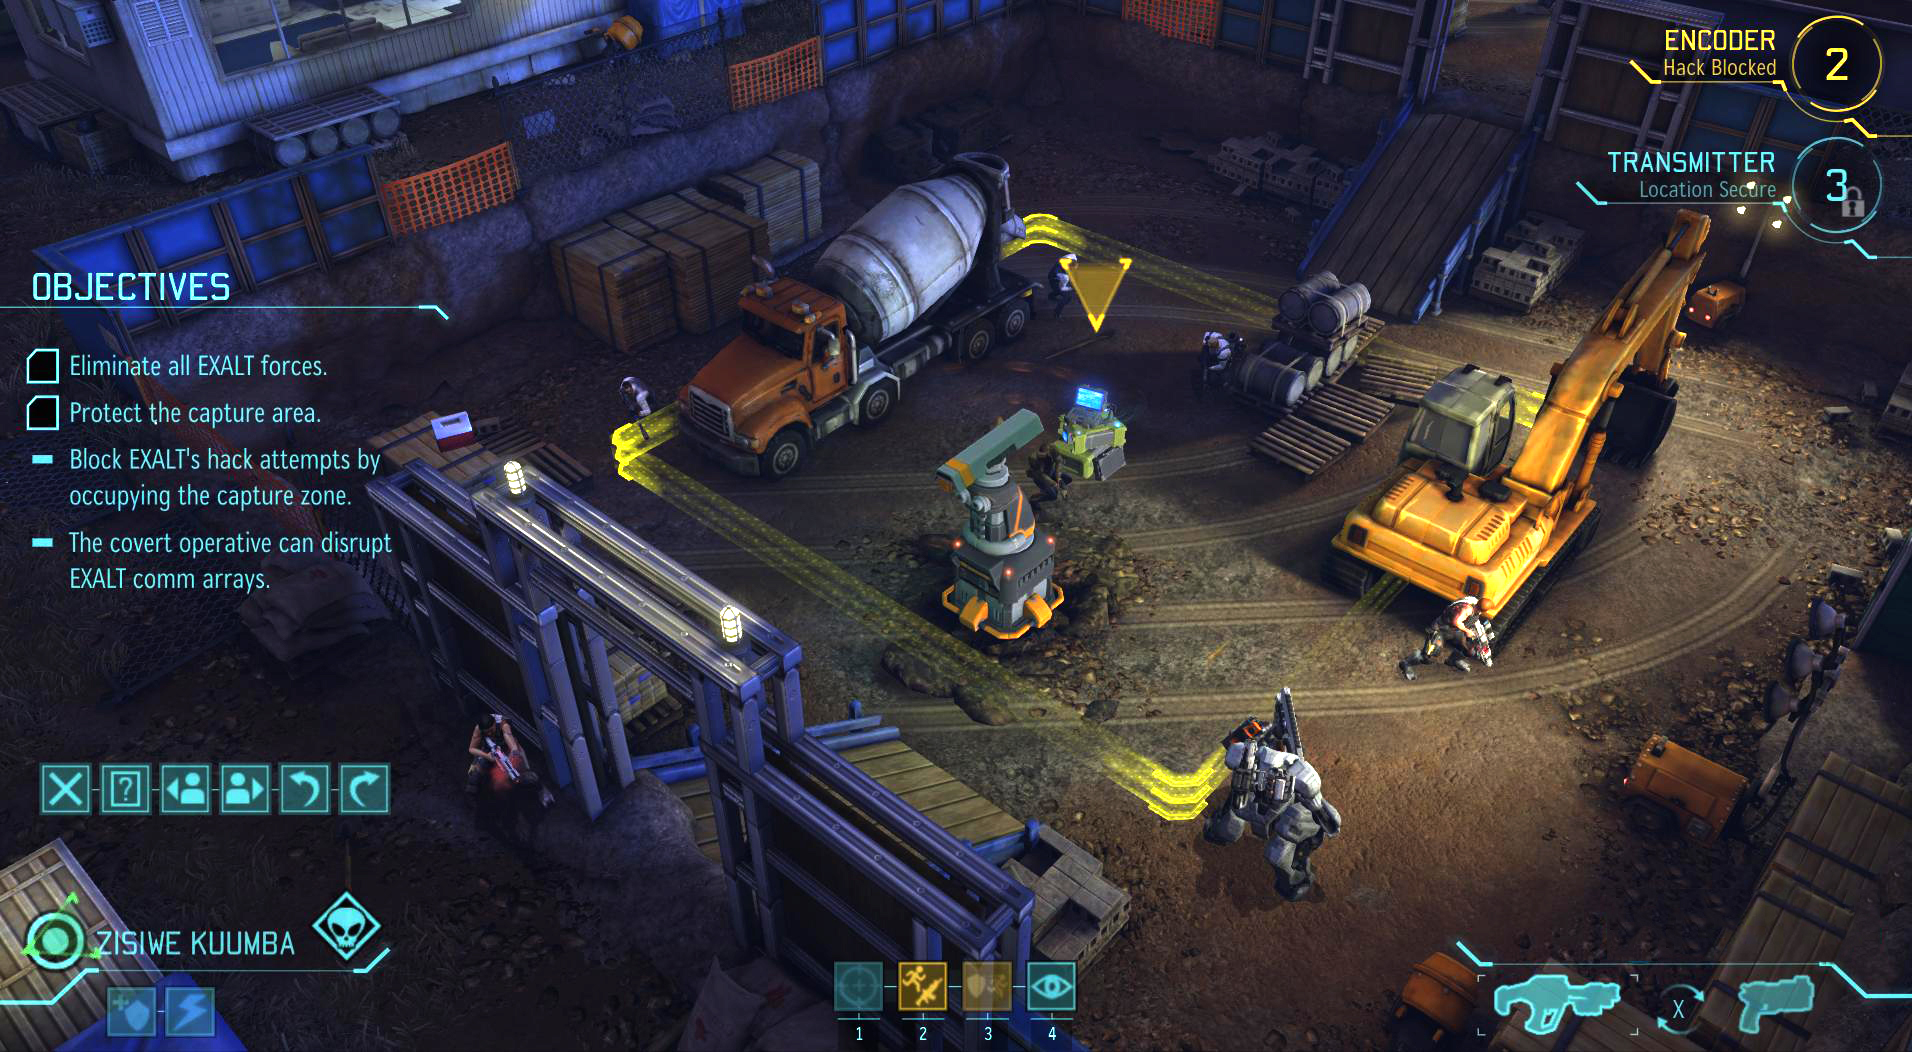 XCOM: Enemy Within turns your agents into undercover spies | Polygon